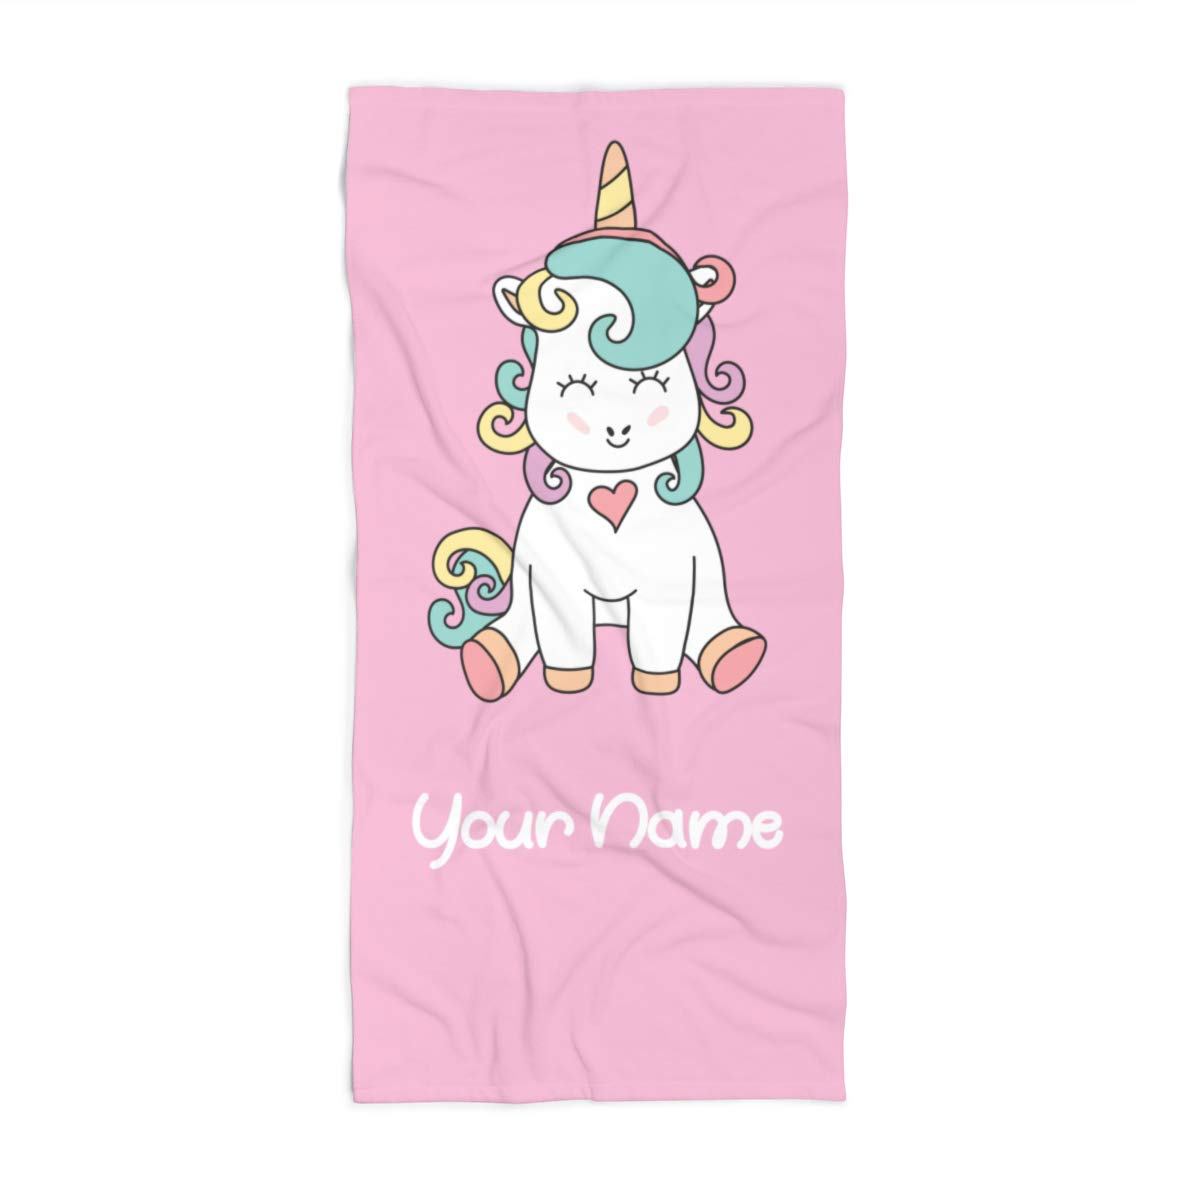 Extra Large Personalized Unicorn Towel for Kids - Oversized Thick Cotton Custom Travel Beach Pool and Bath Towels for Adults Toddler Baby Boys Girls Elsa (Beach Towel 35''x70'')